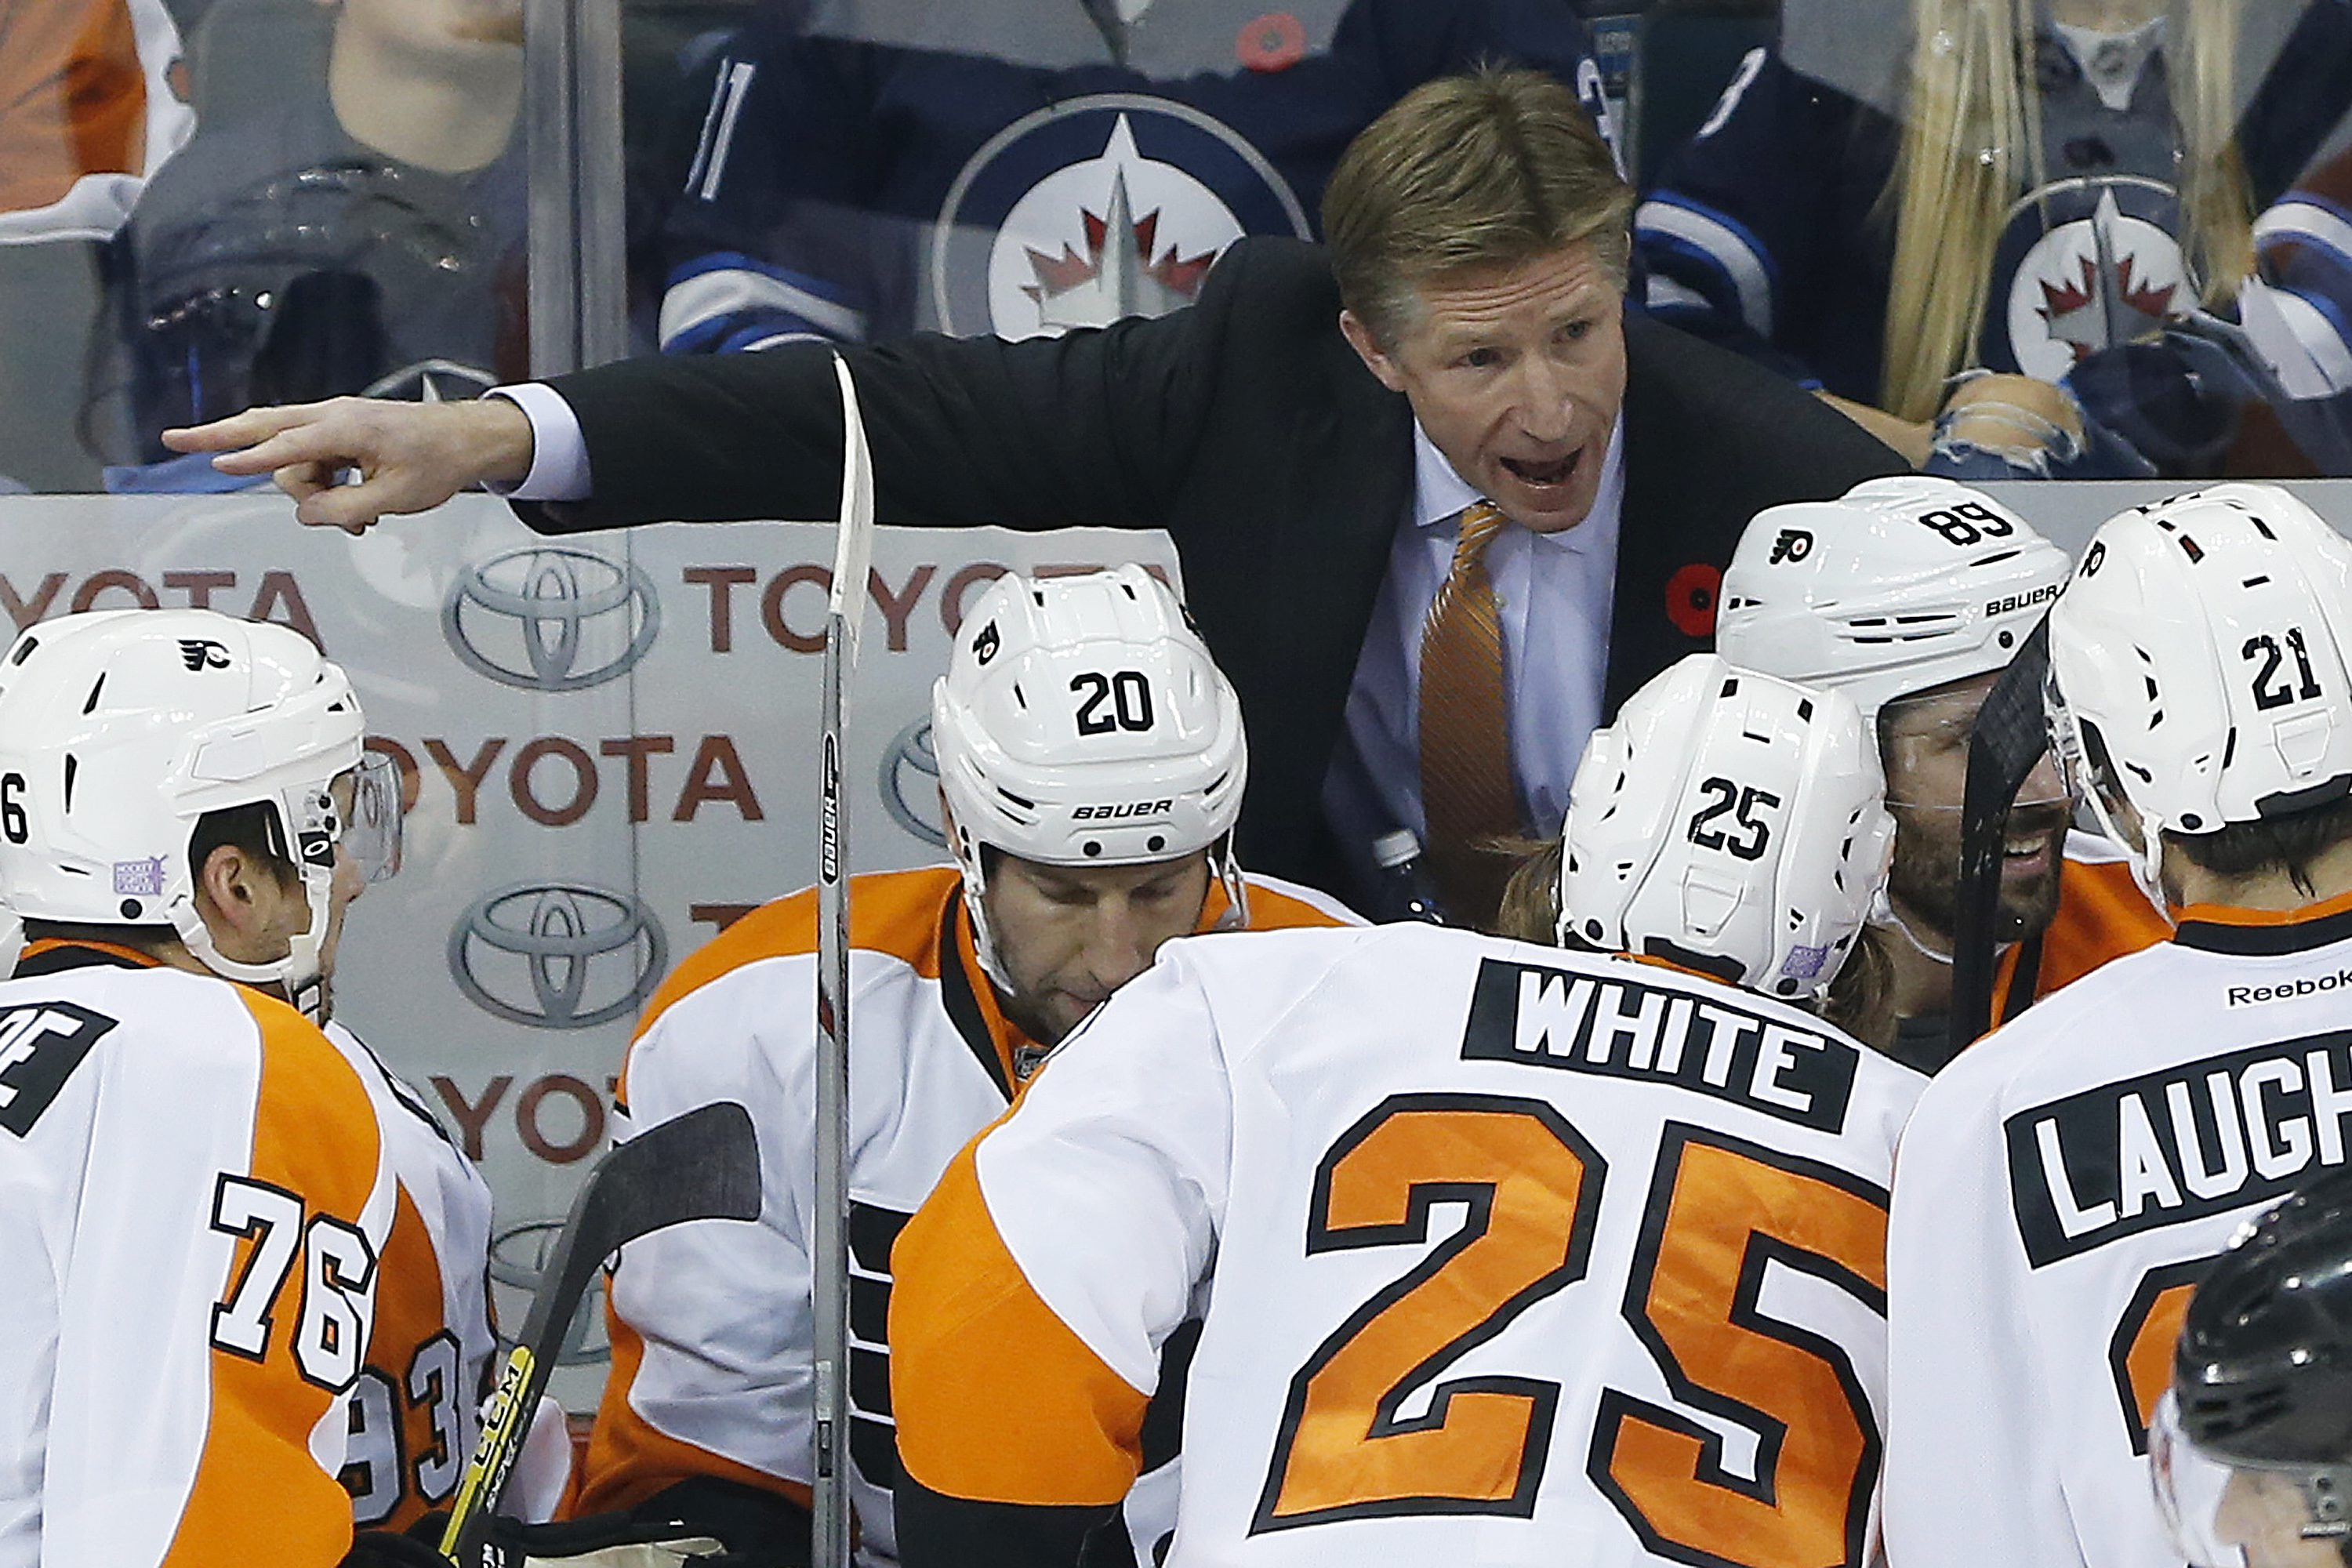 FILE - In this Nov. 7, 2015, file photo, Philadelphia Flyers head coach Dave Hakstol,top, speaks to his players during the first period of NHL hockey game against the Winnipeg Jets in Winnipeg, Manitoba. Last summer Hakstol became the first college hockey